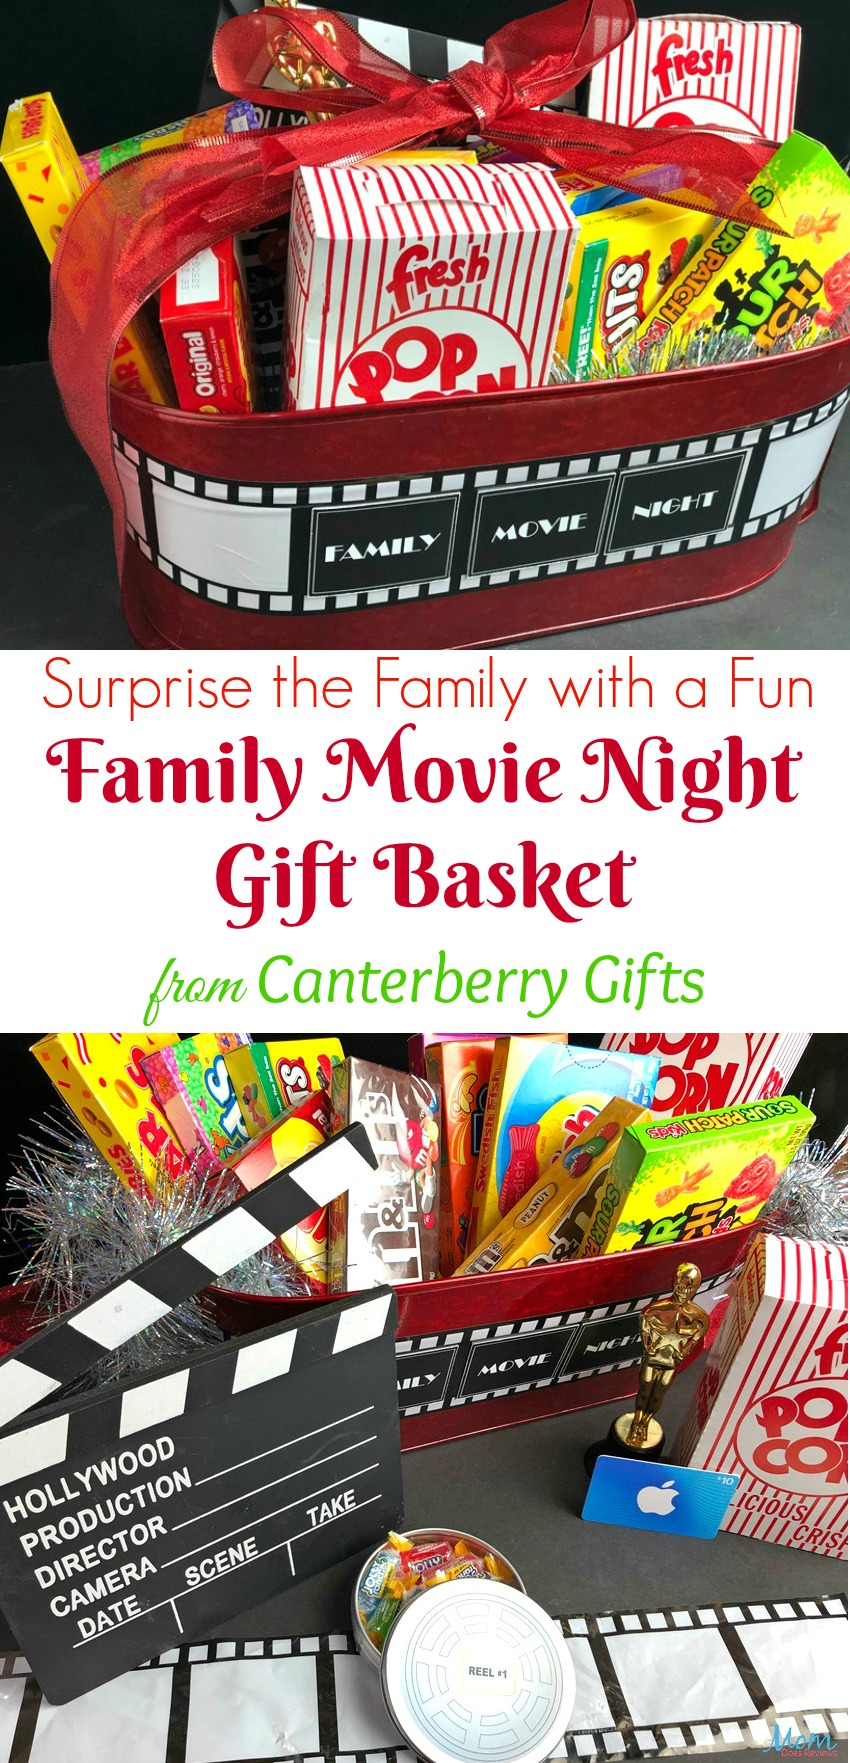 Surprise the Family with a Fun Family Movie Night Gift Basket from Canterberry Gifts #SpringFunonMDR